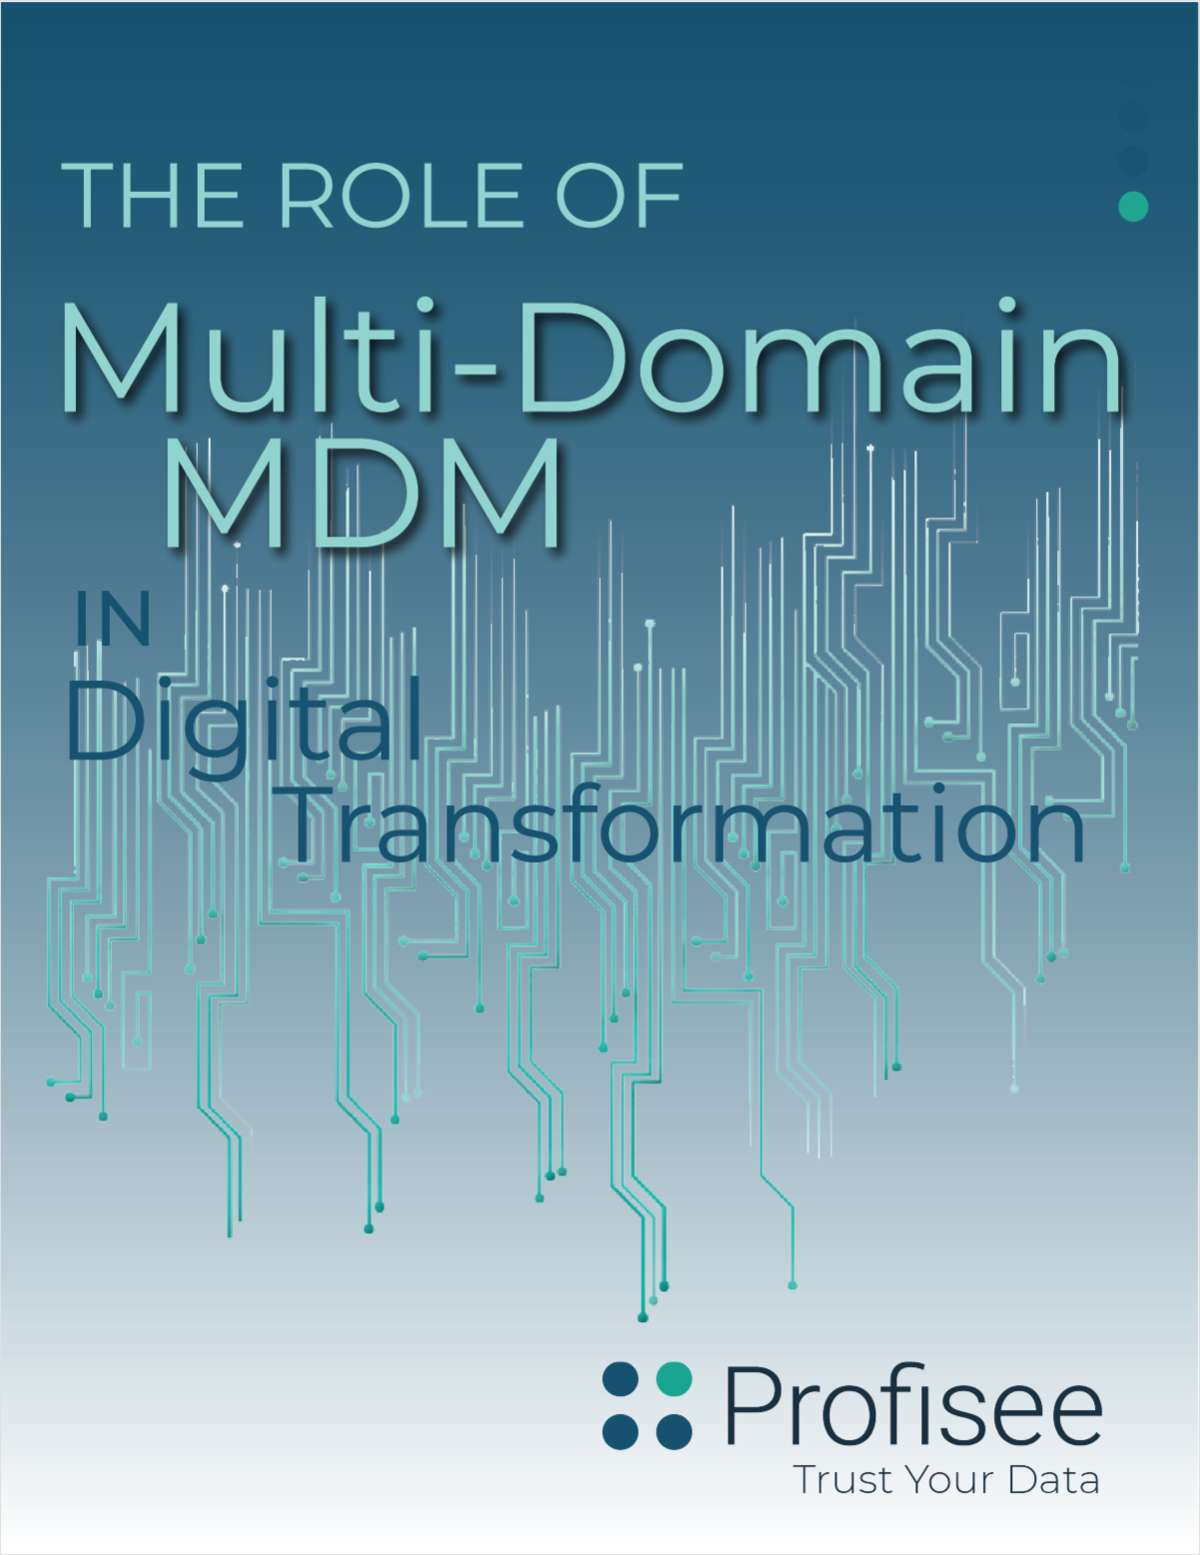 The Role of Multi-Domain Master Data Management (MDM) in Digital Transformation